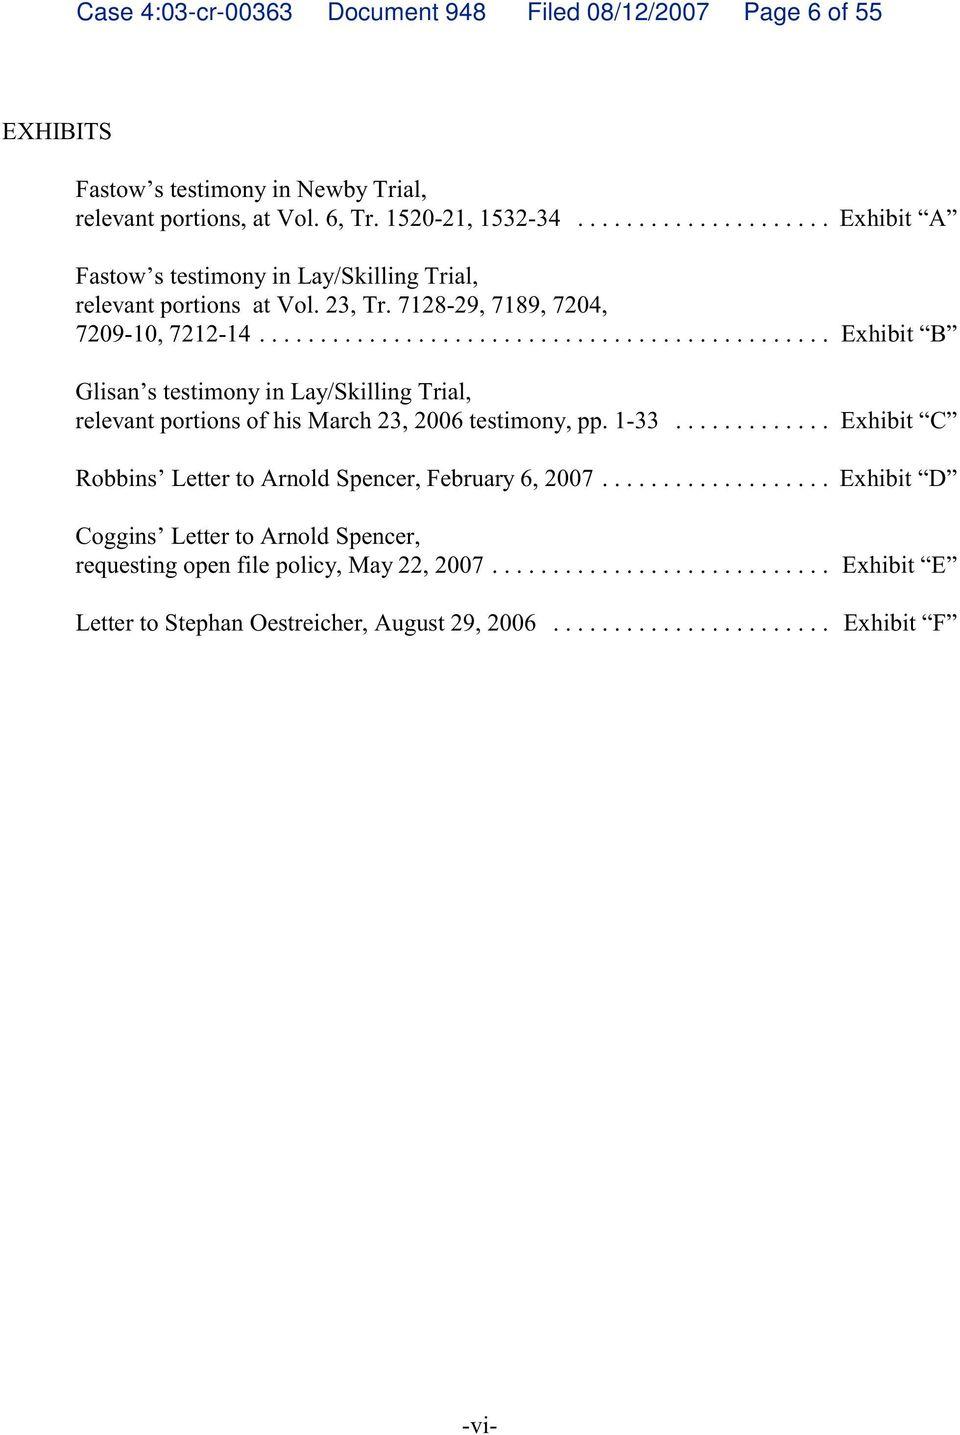 .. Exhibit B Glisan s testimony in Lay/Skilling Trial, relevant portions of his March 23, 2006 testimony, pp. 1-33............. Exhibit C Robbins Letter to Arnold Spencer, February 6, 2007.